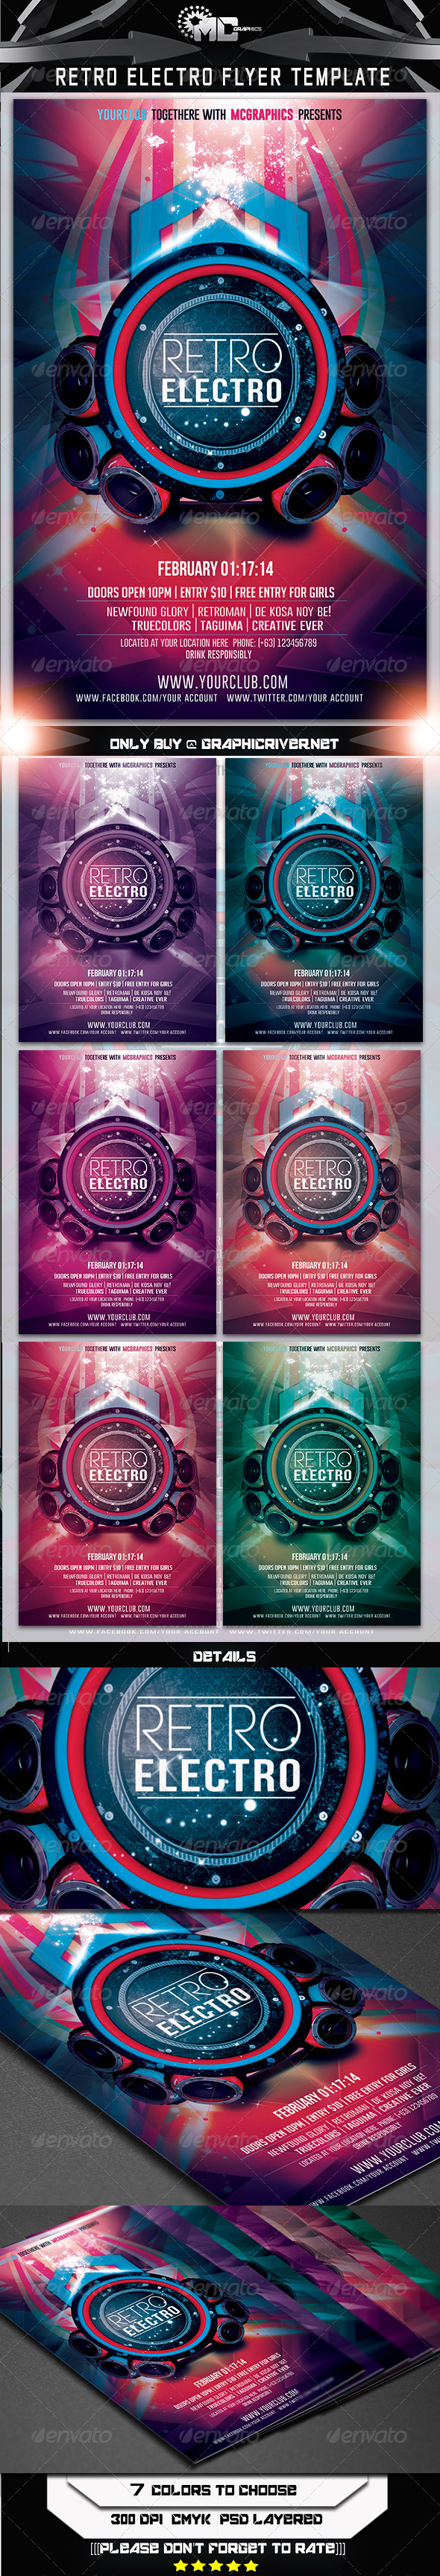 Retro Electro Flyer Template - Events Flyers